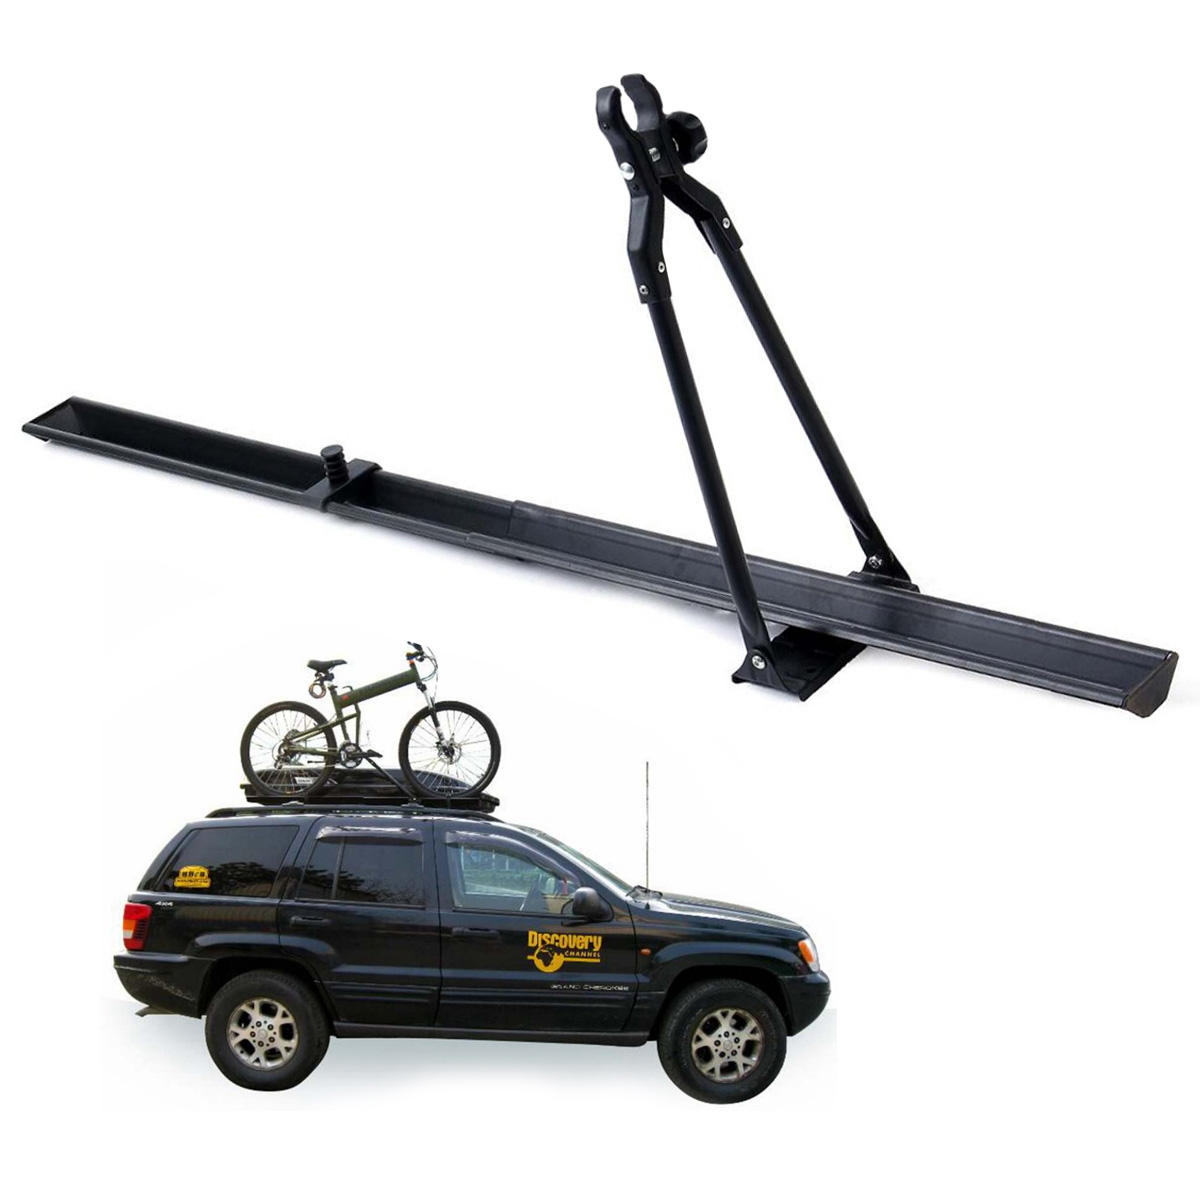 71cba22fbd9 BIKIGHT Universal Car Roof Bike Carrier Top Mount Rack Bicycle Racks Travel  Outdoors 150cm Fit for Most Car COD